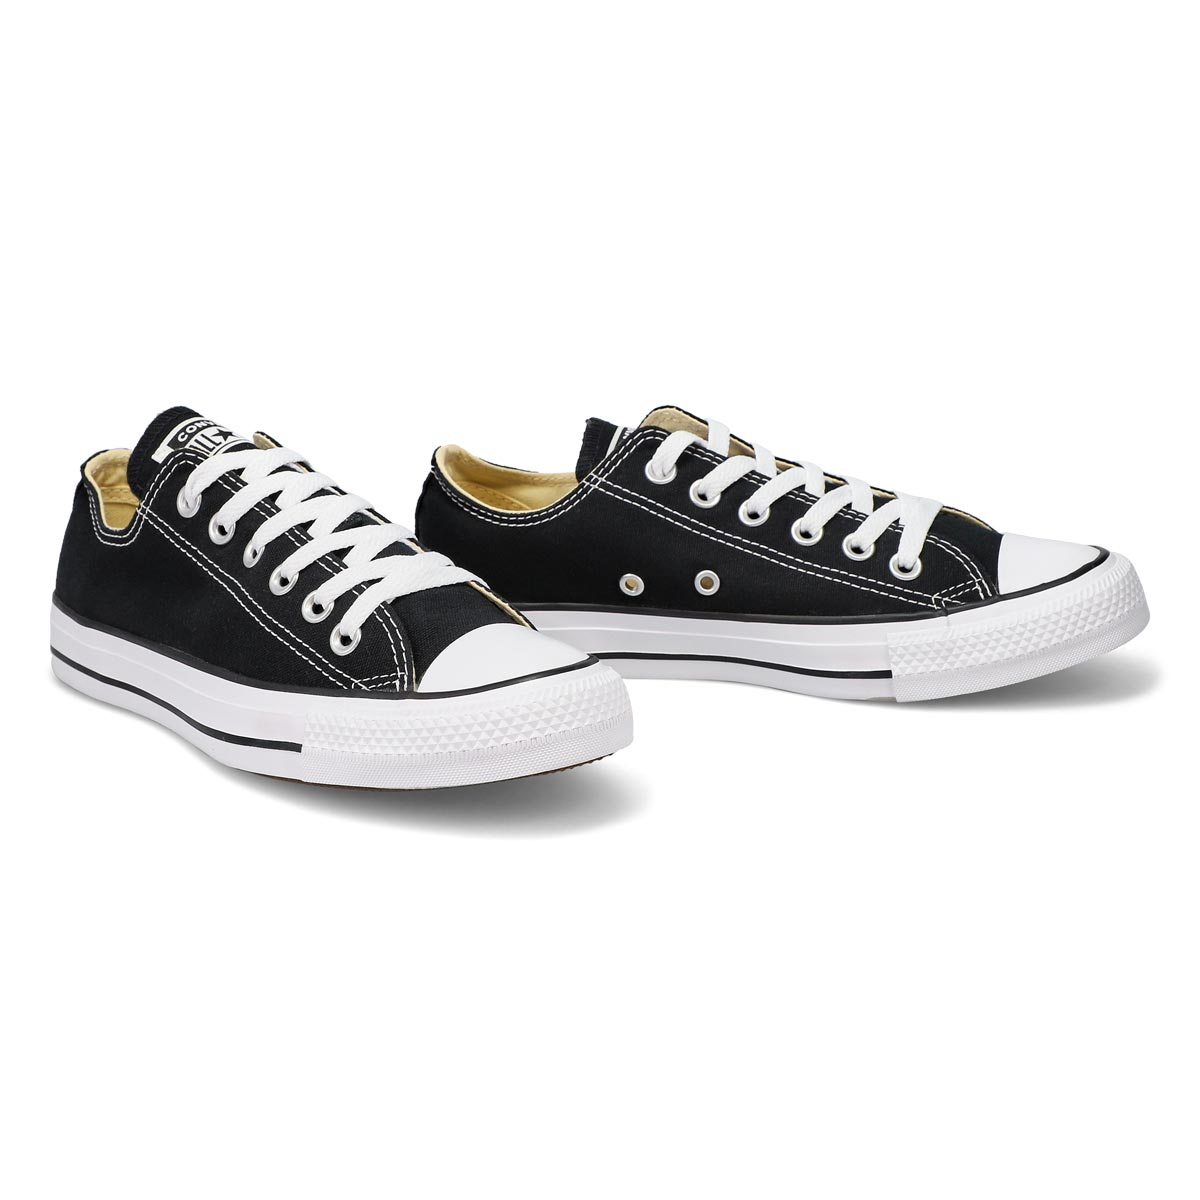 Lds CT All Star Core Ox blk sneaker